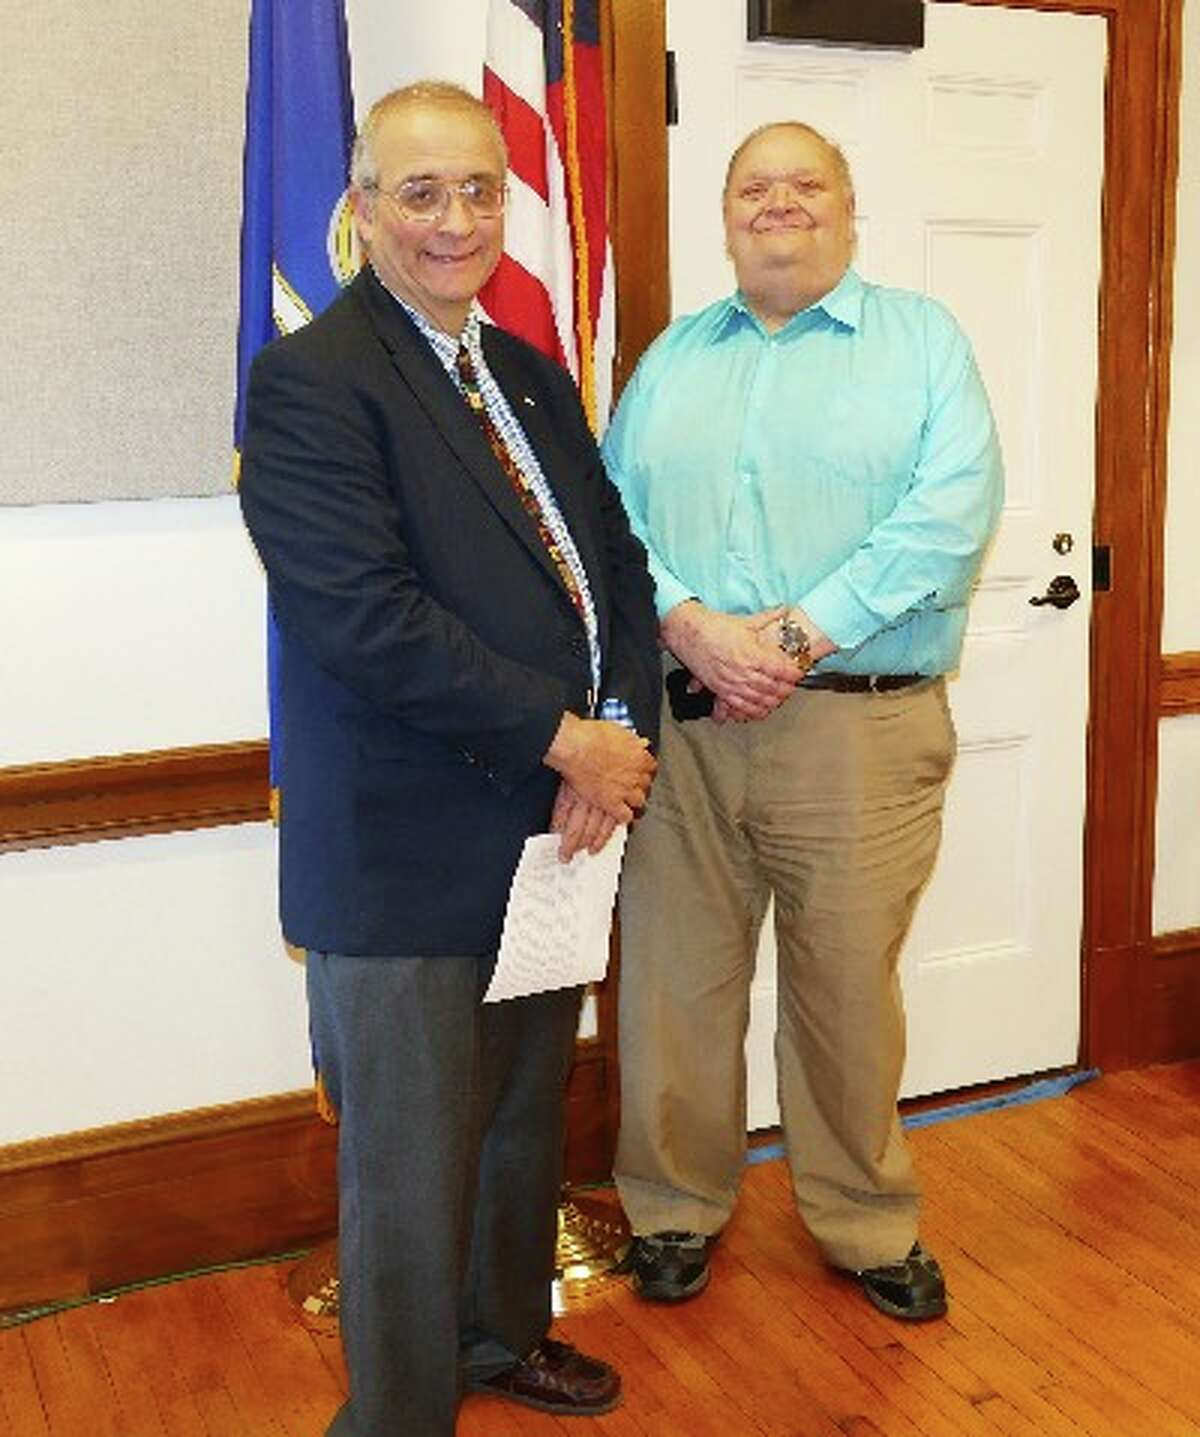 Registrar George Cody, right, with Registrar John Amarilios at the Democratic Town Committee Caucus May 23 where Amarilios was nominated and endorsed to be the Democrat candidate for registrar. - Greg Reilly photo